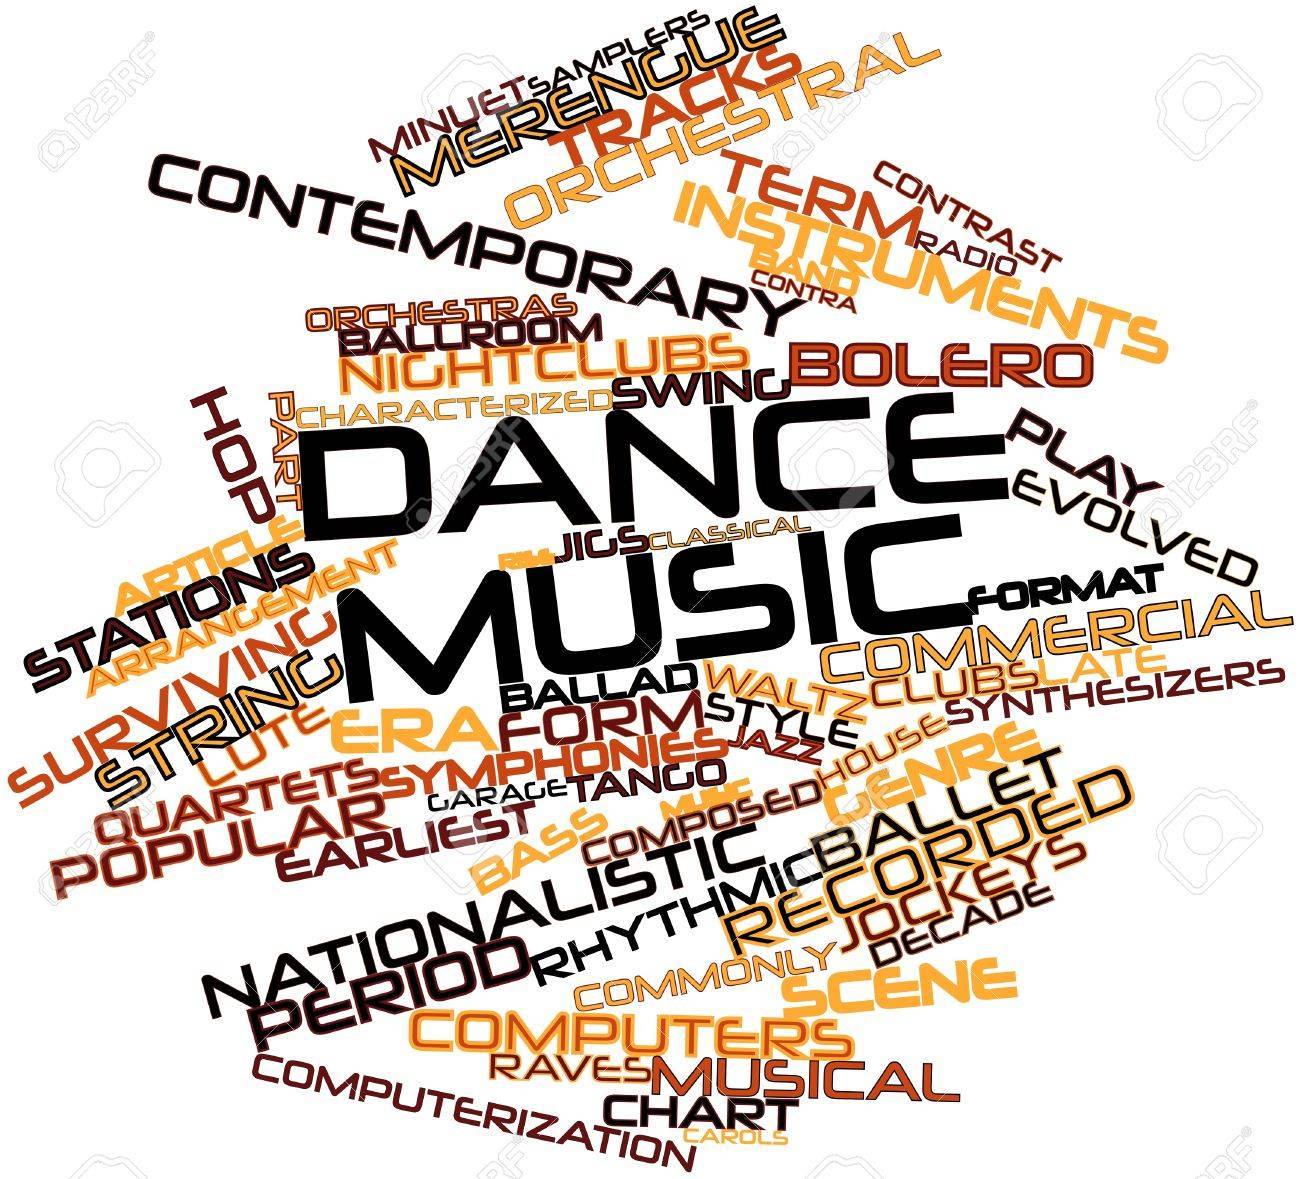 Abstract word cloud for Dance music with related tags and terms